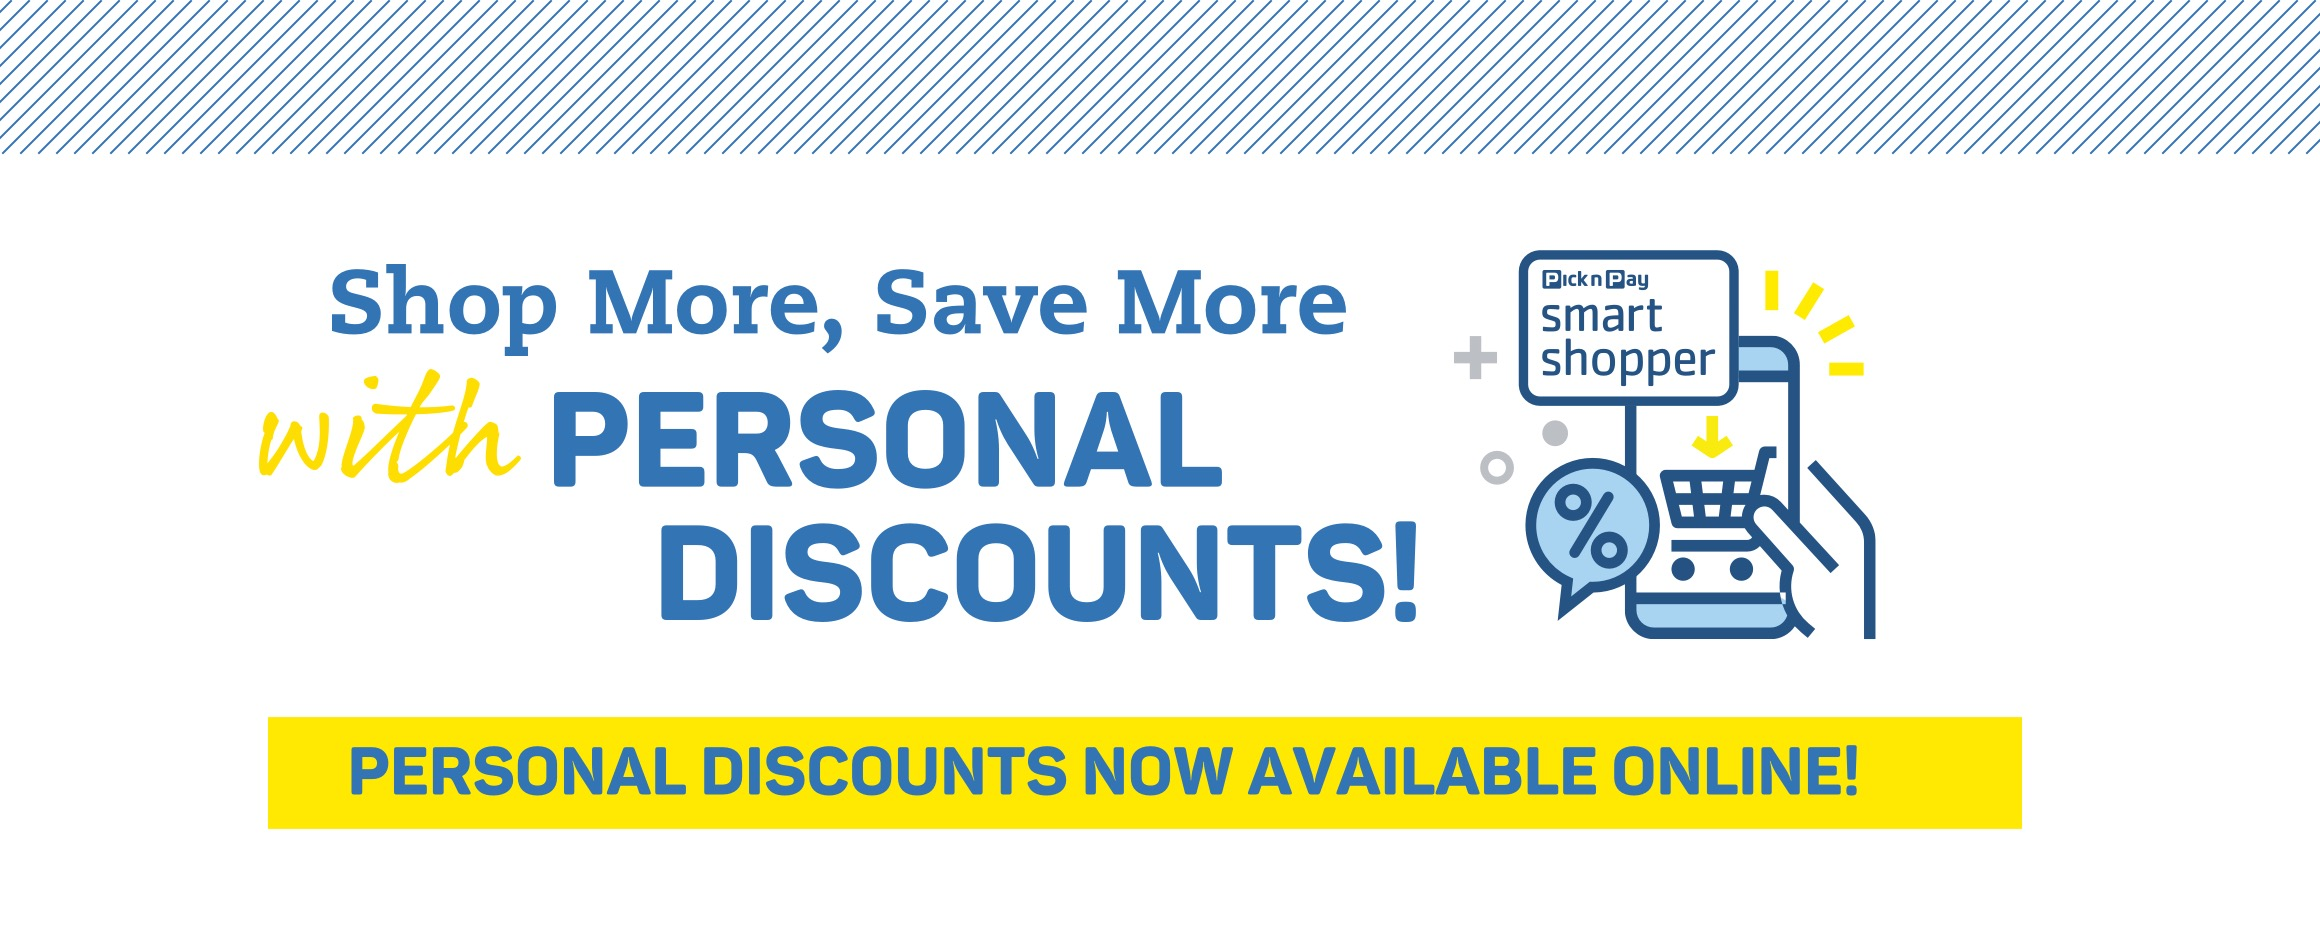 Shop more, save more with PERSONAL DISCOUNTS. personal discounts now available online!